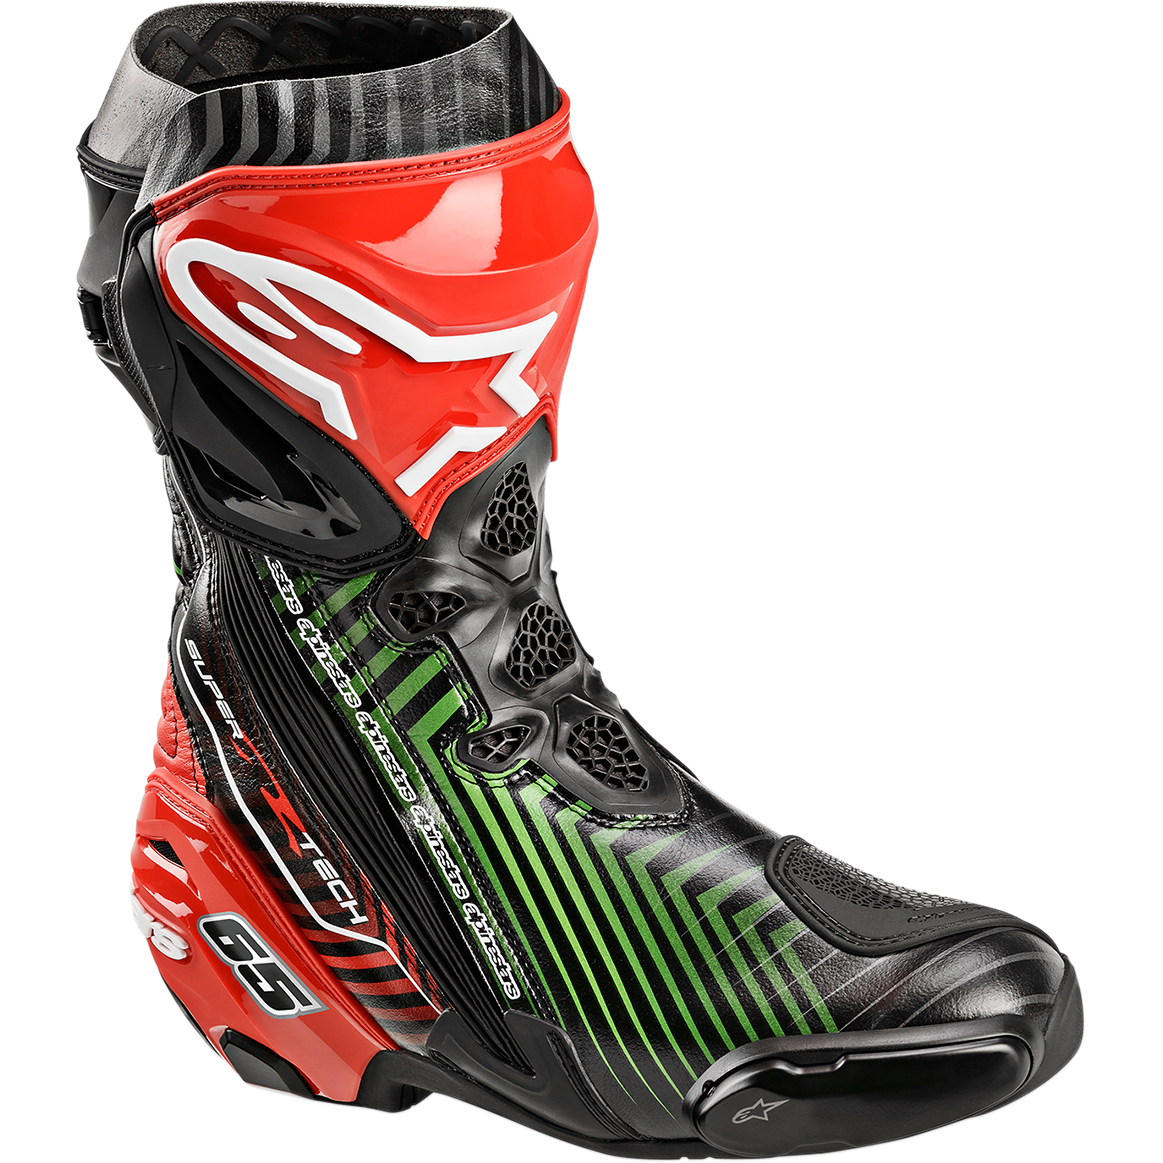 Limited Edition Jonathan Rea Supertech R Boots